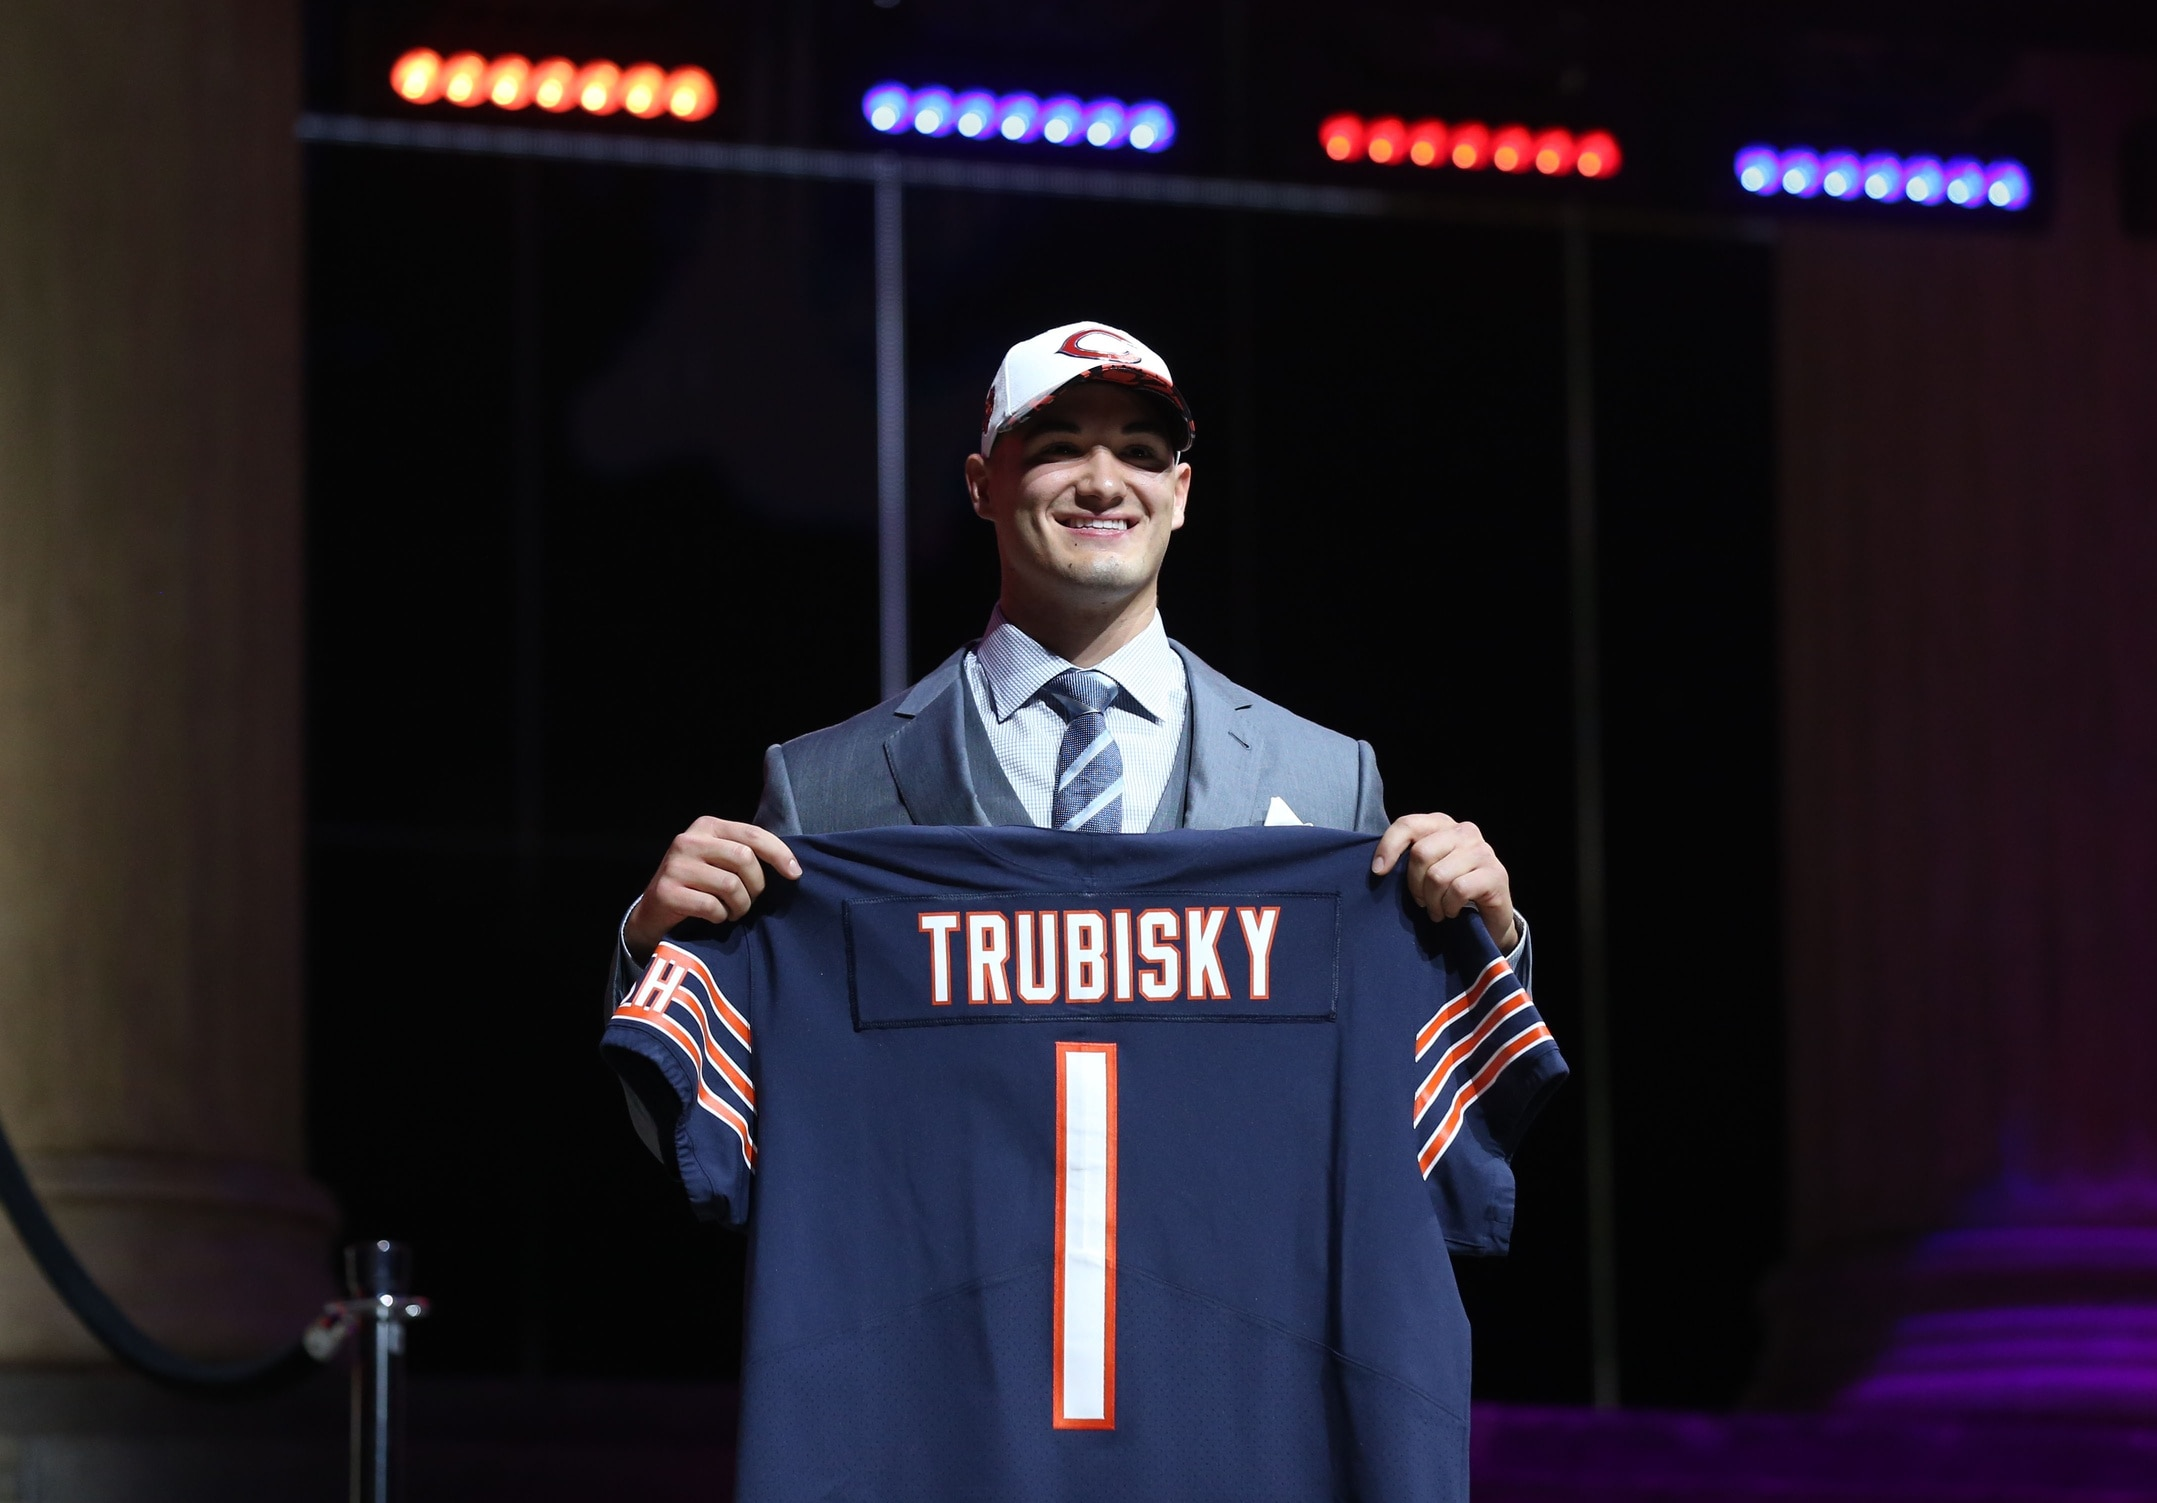 The Bears taking MItchell Trubisky was one of the most stunning NFL offseason moves in 2017